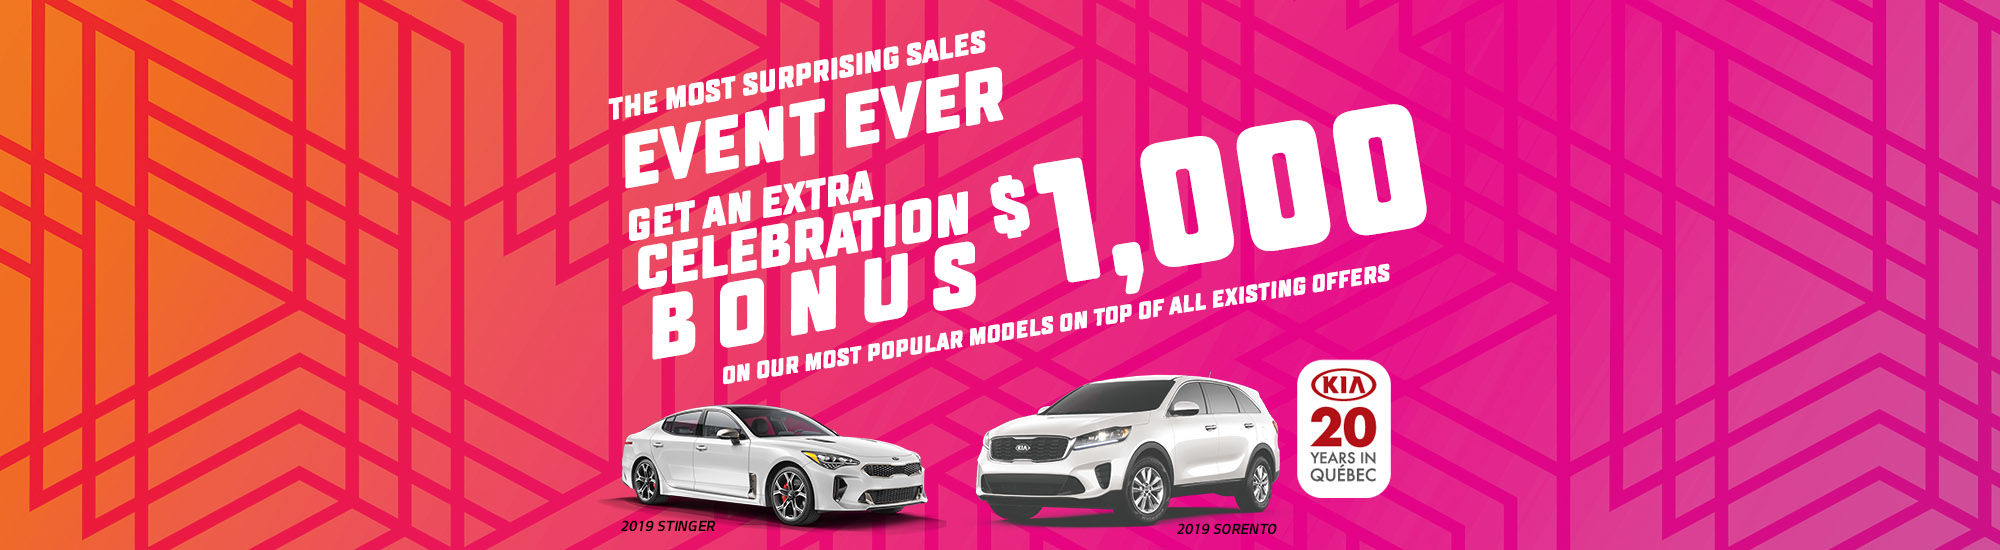 Kia the most surprising sales event ever